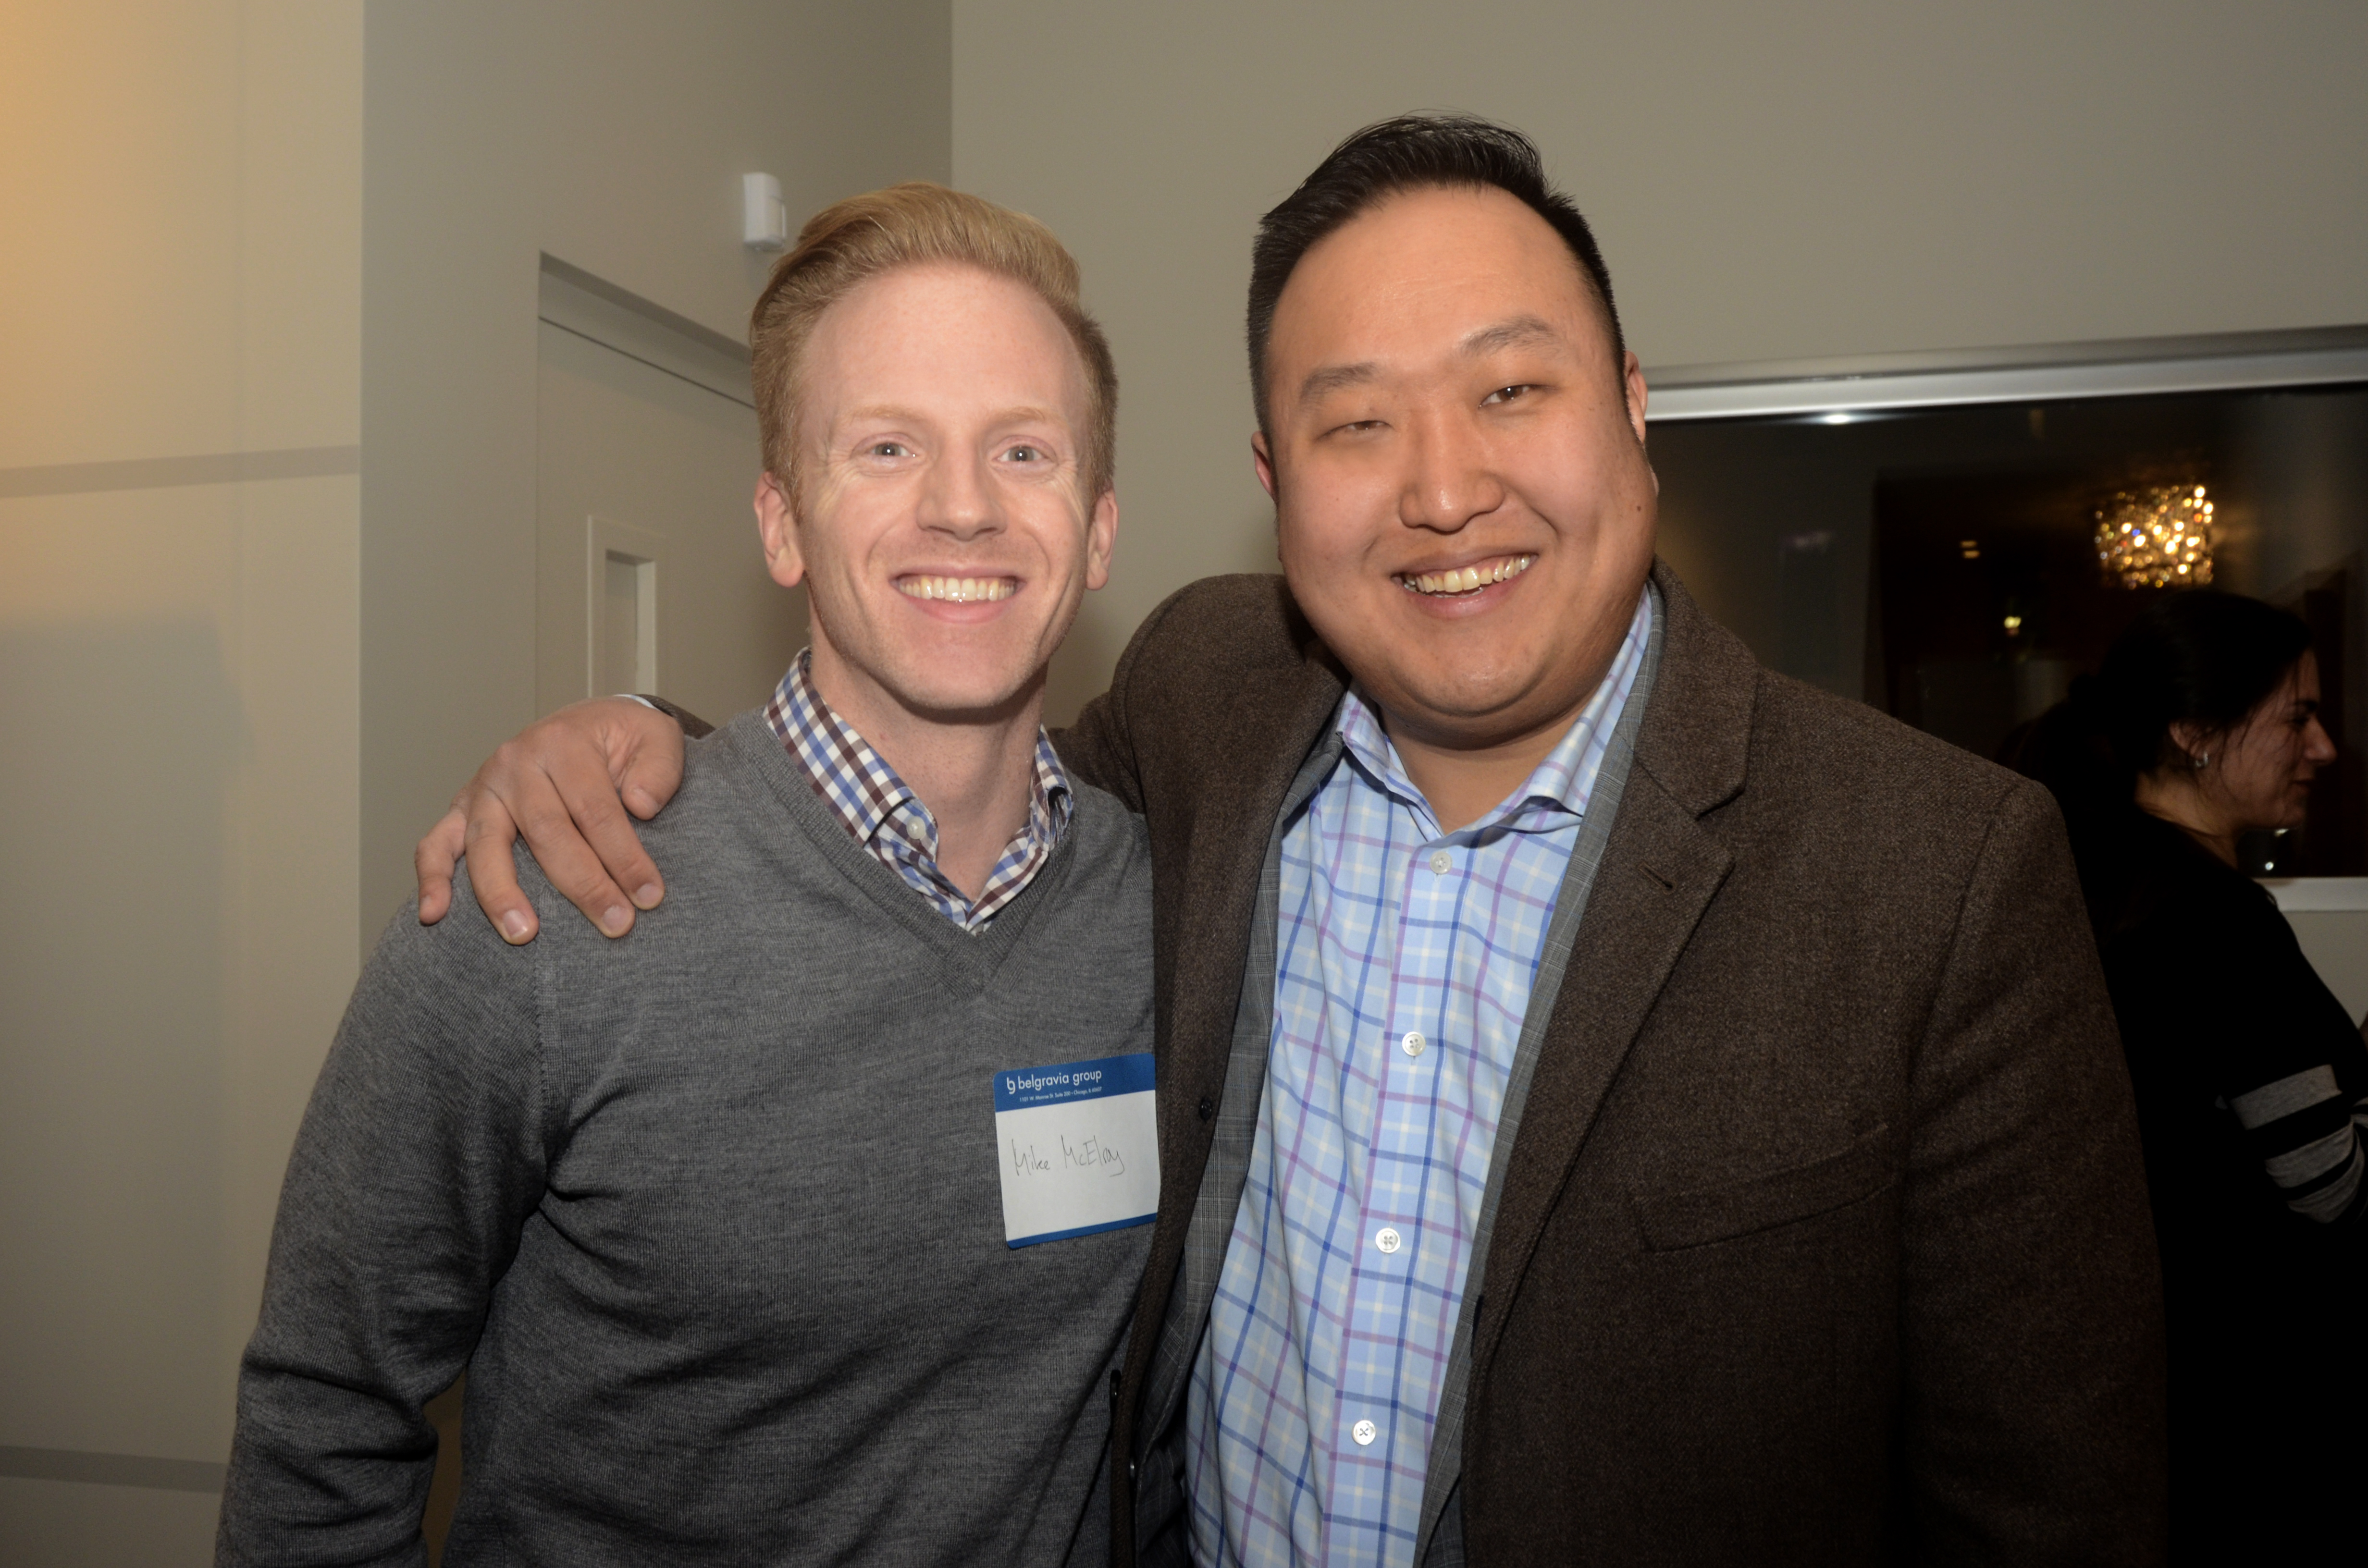 009-Mike-McElroy.-Tommy-Choi-KW.jpg